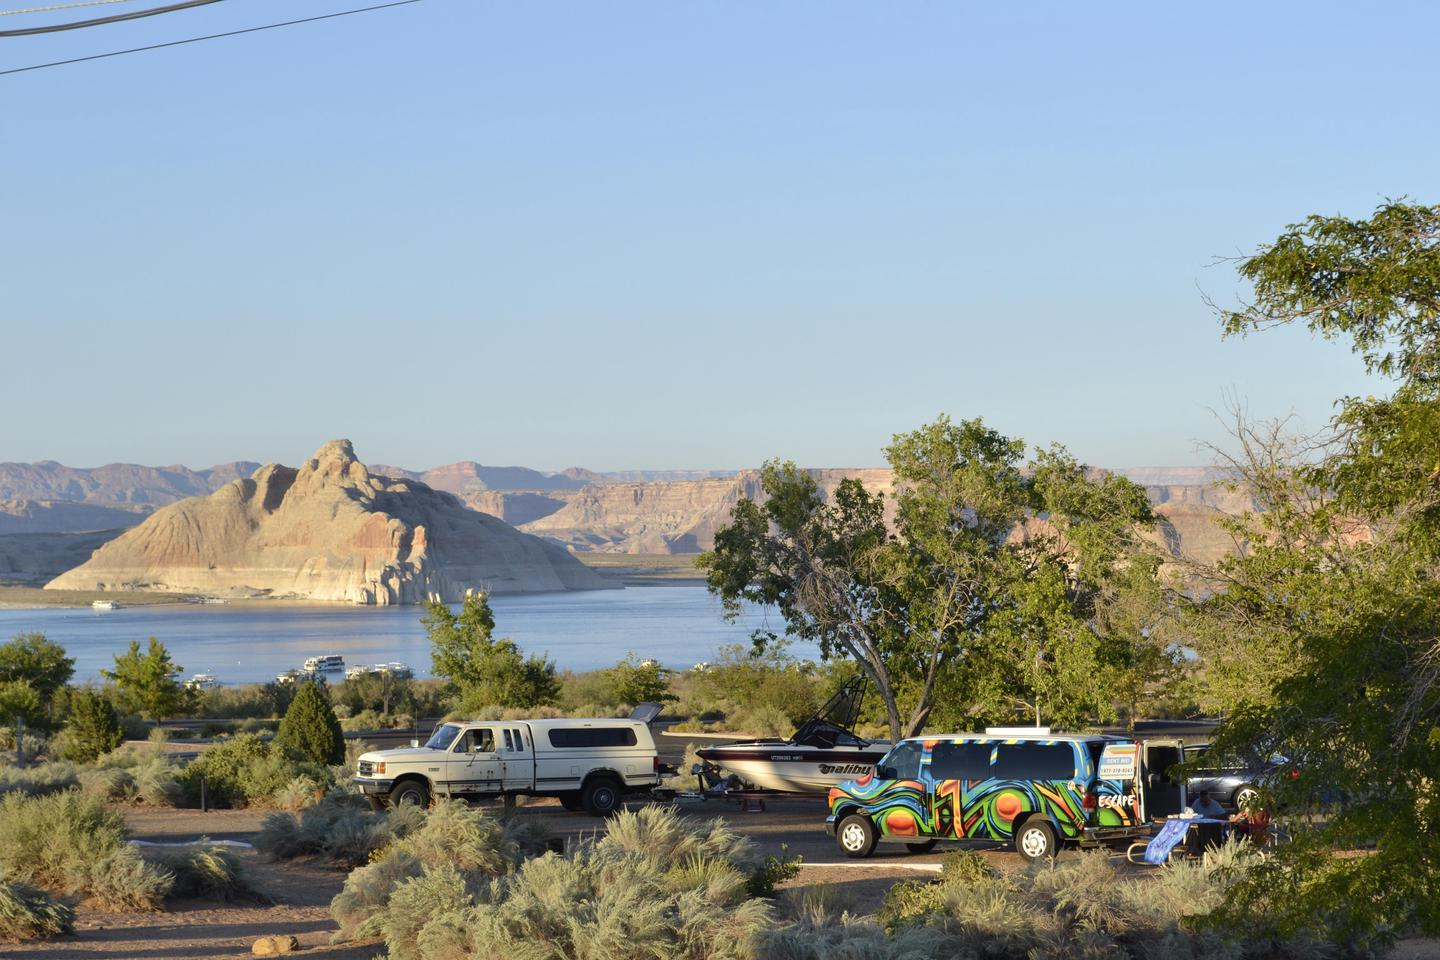 Different vehicles at Wahweap campground.There's room to pull your boat into your camping spot.